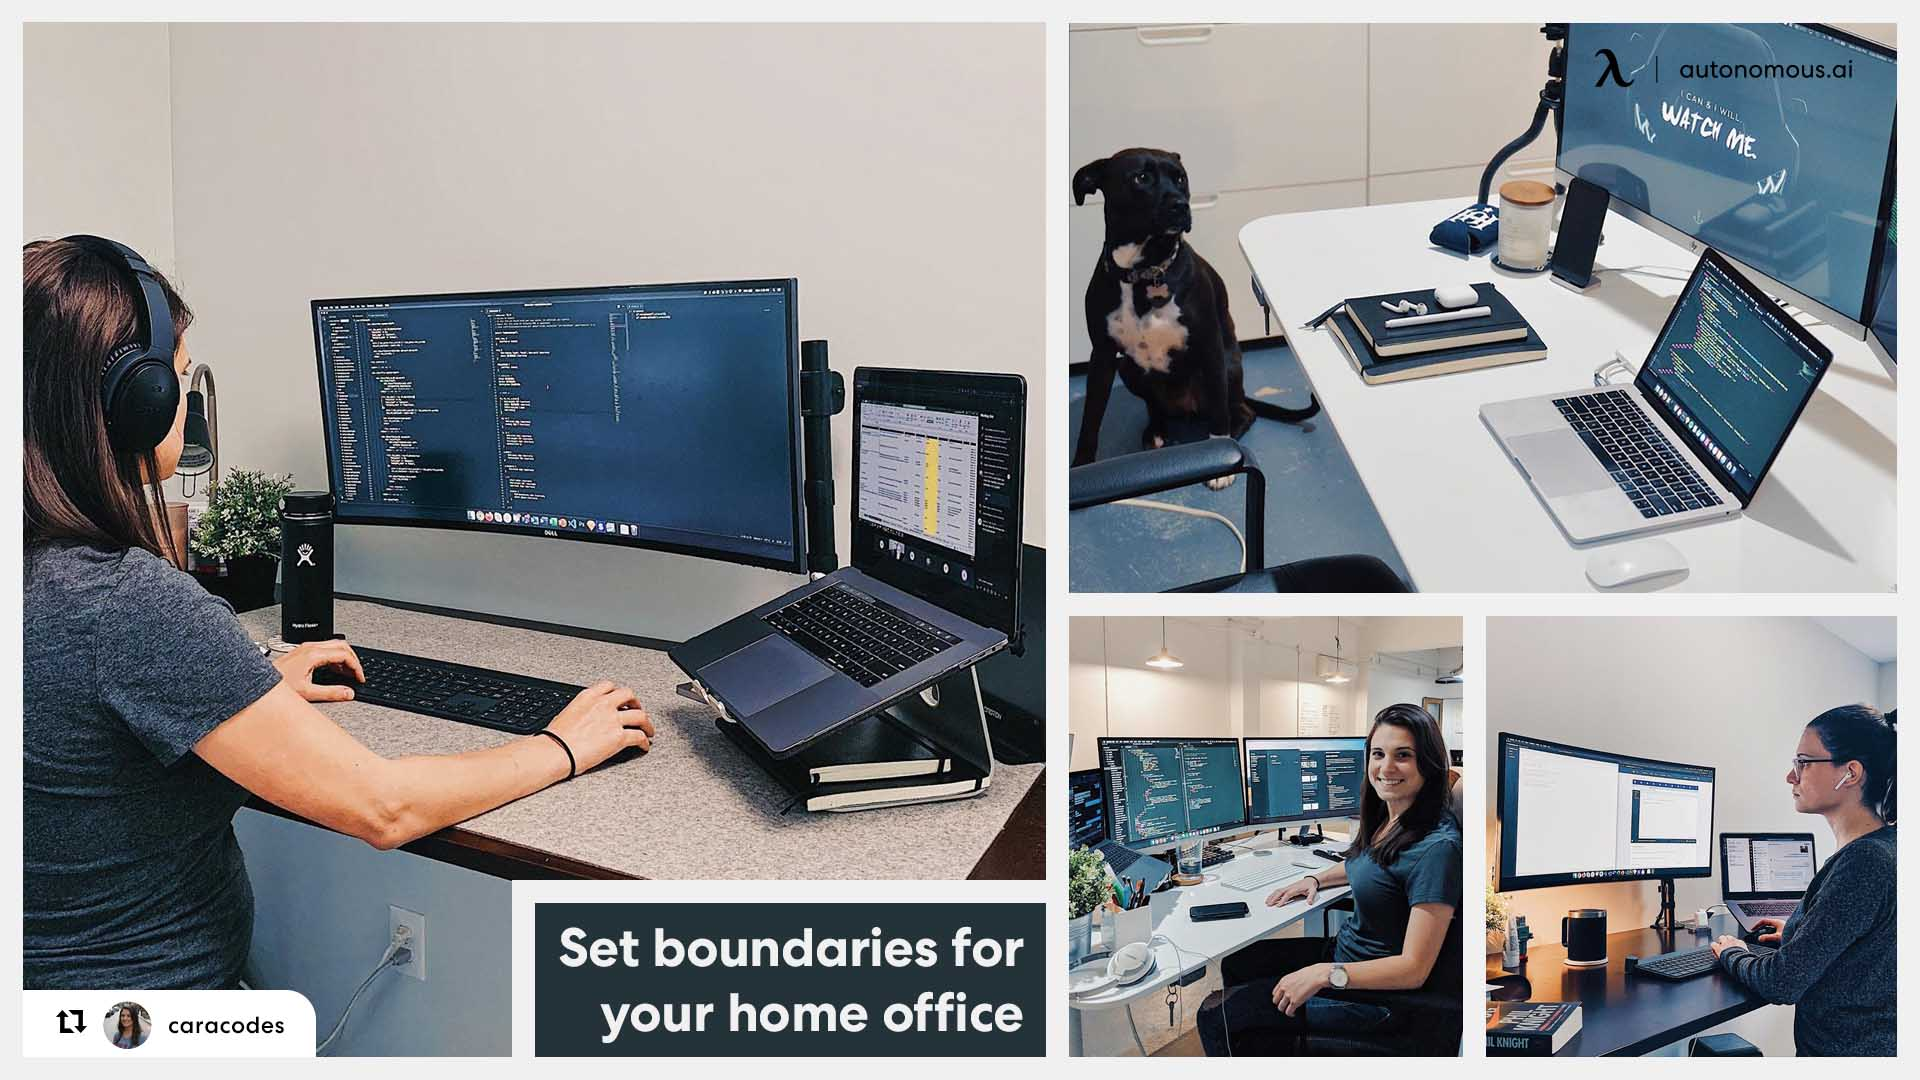 Set boundaries for your home office